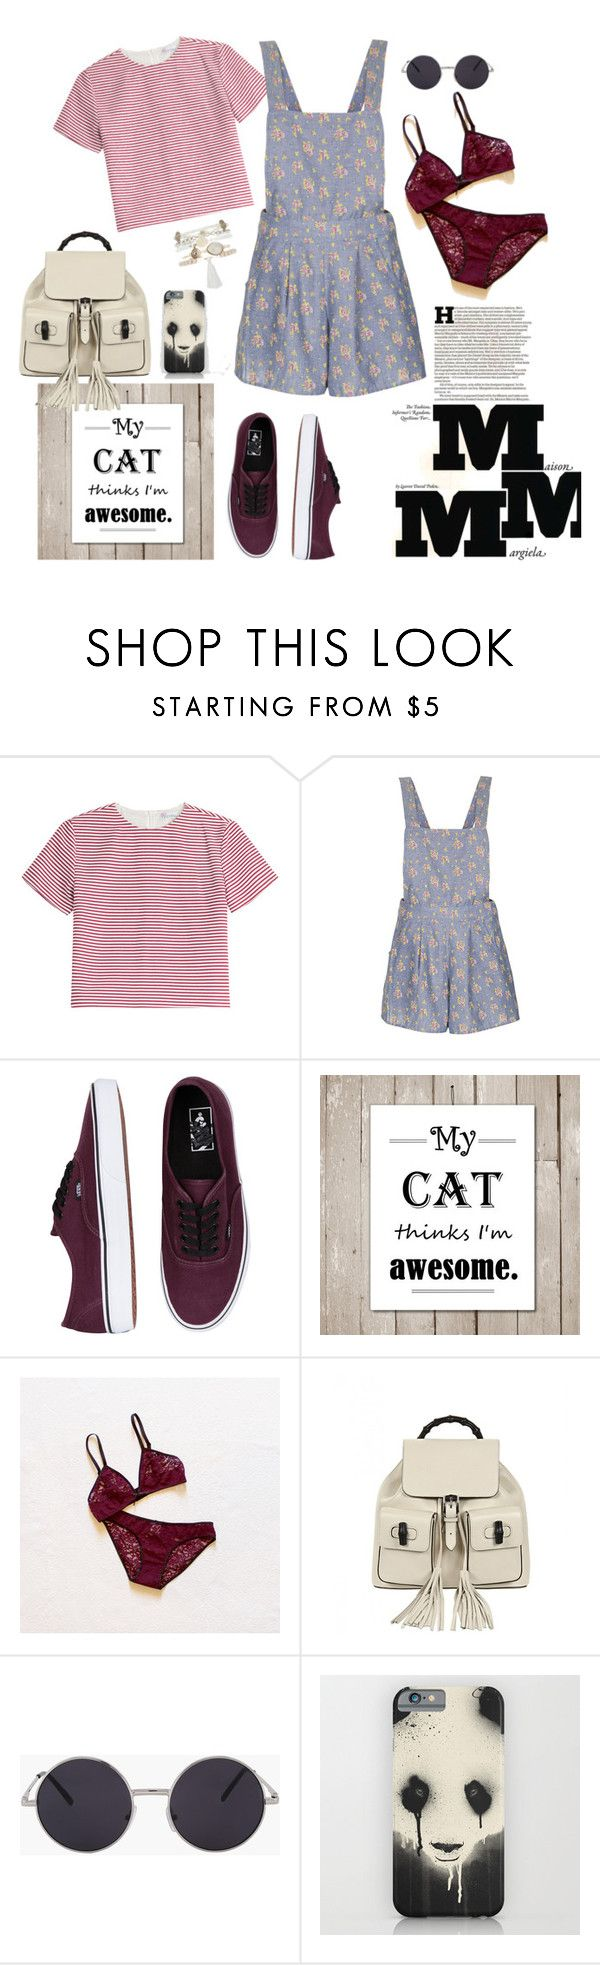 """""""Trouble"""" by lila-pauser ❤ liked on Polyvore featuring RED Valentino, Topshop, Vans, Gucci, Monsoon and Maison Margiela"""